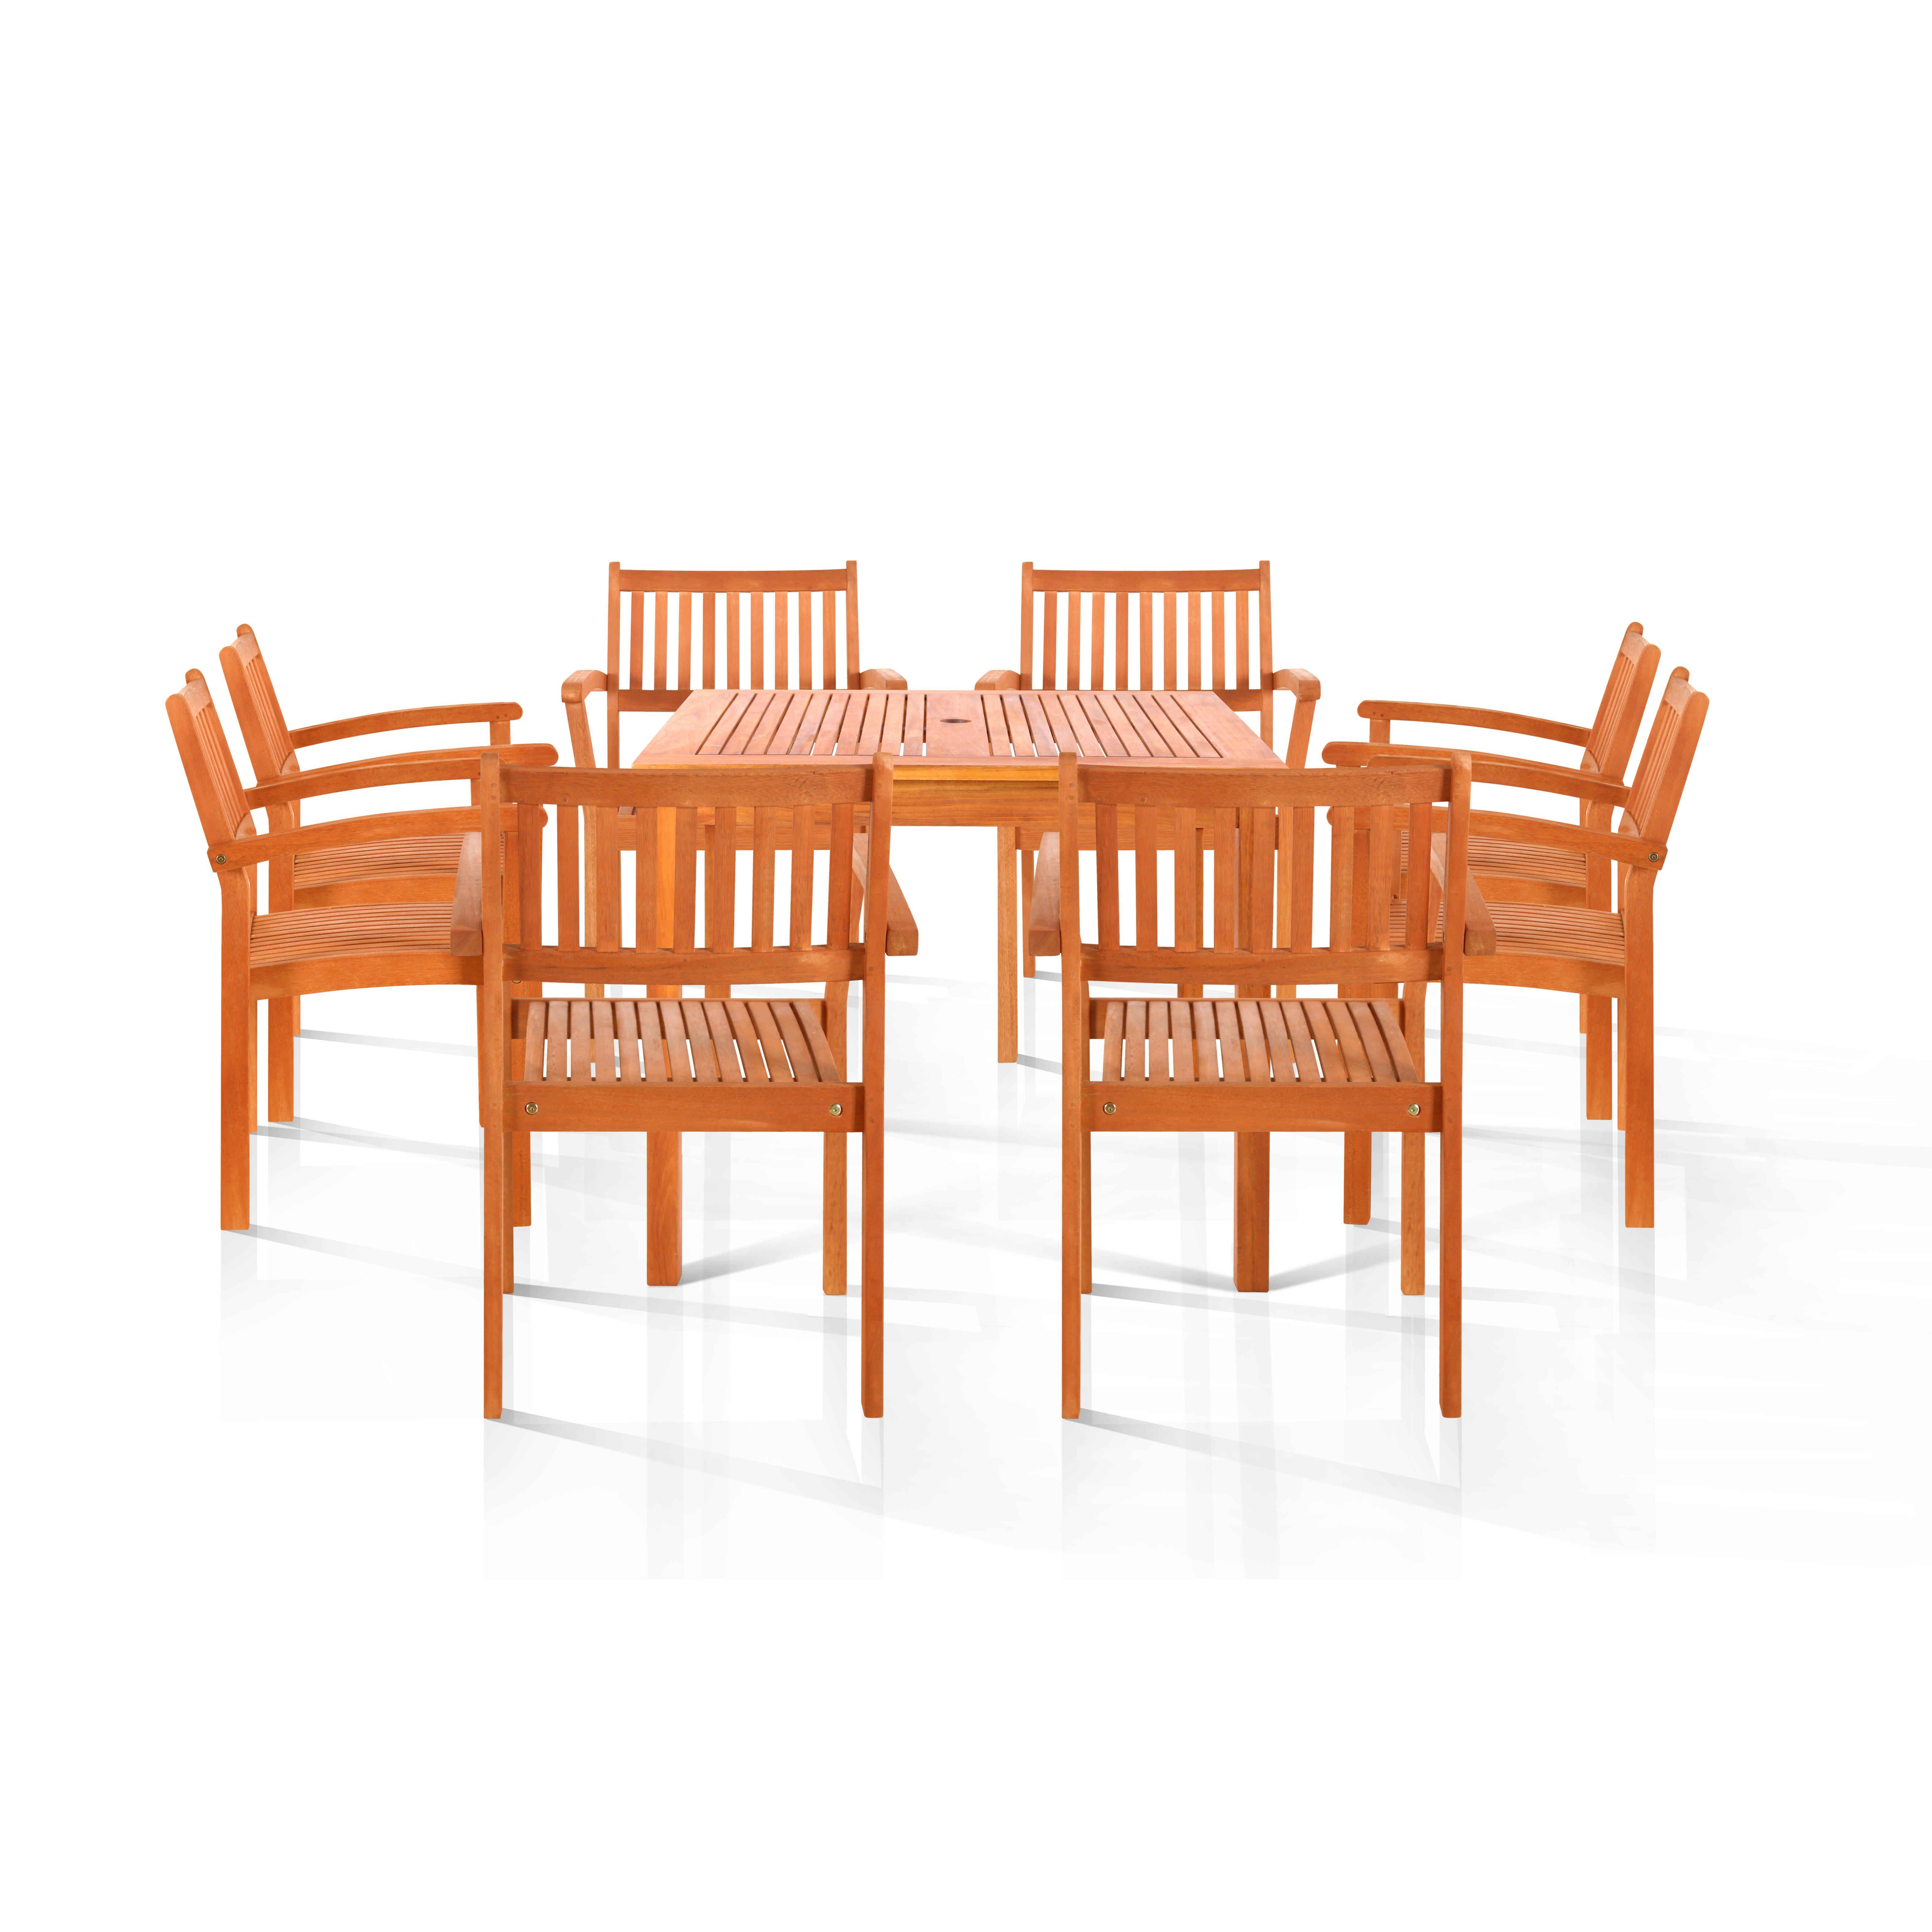 Vifah pasadena 9 piece dining set wayfair for Pasadena outdoor furniture